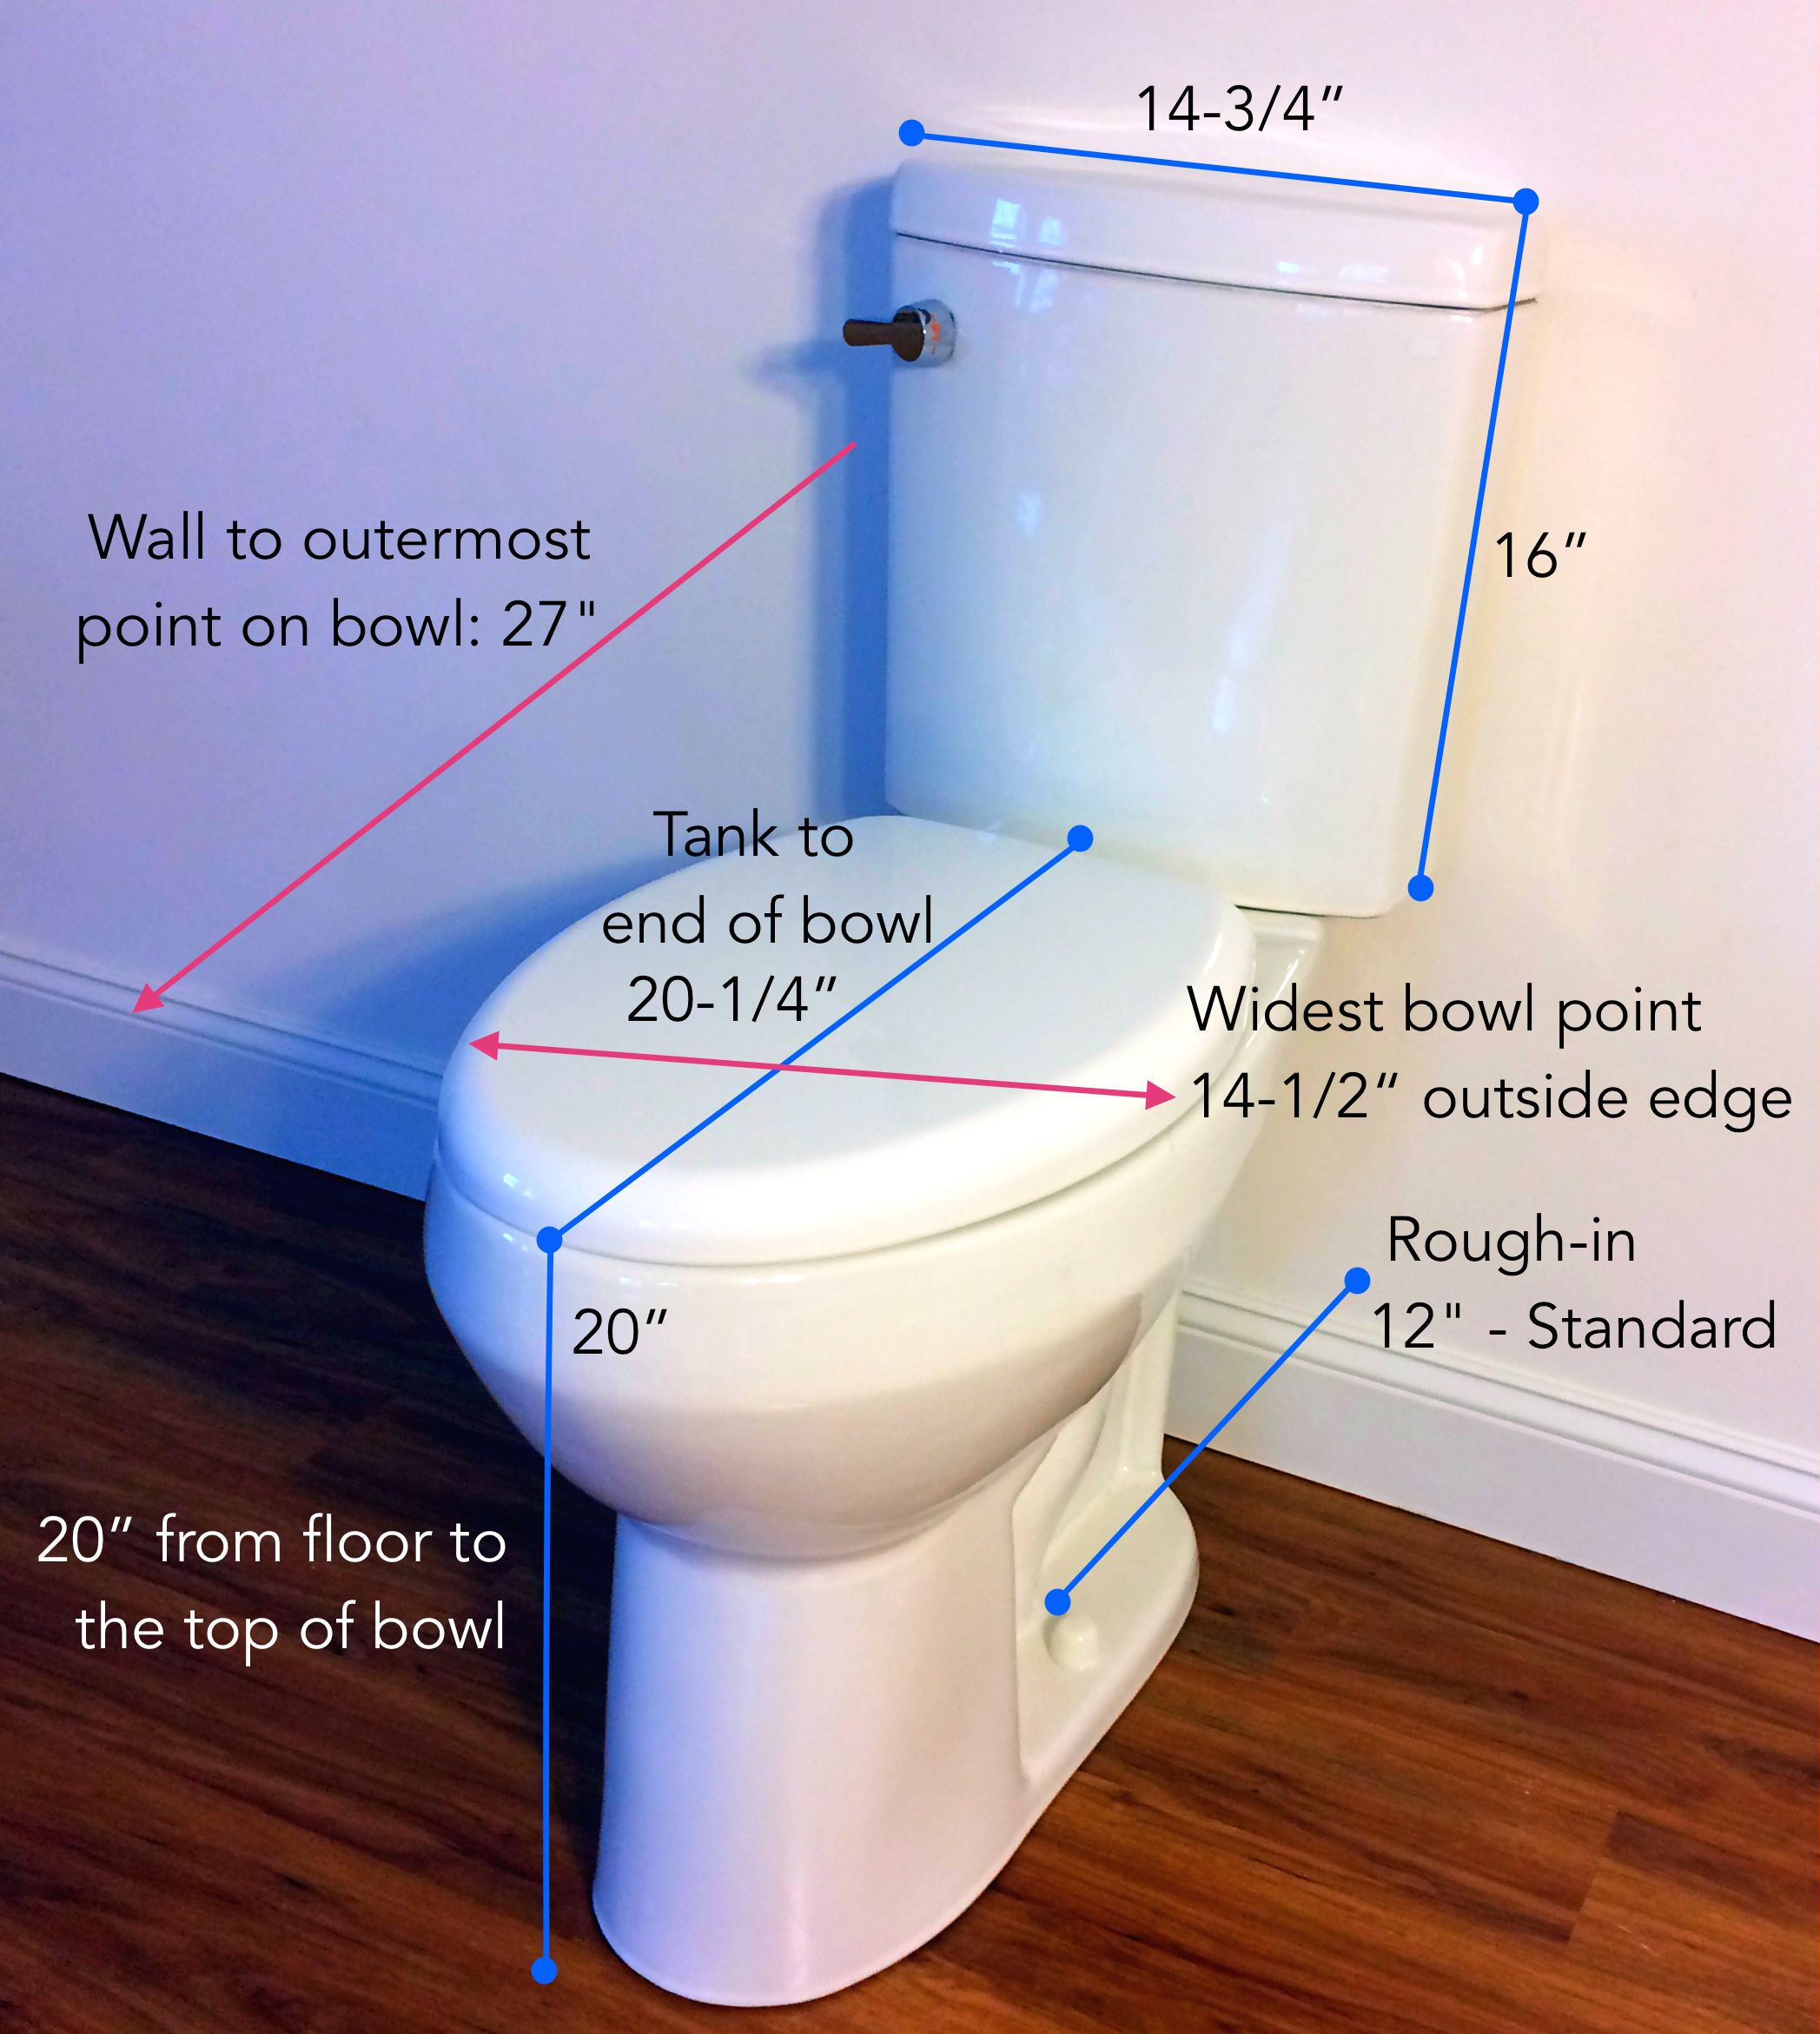 Convenient Height Toilet Tall 20 Inch Bowl With Space Saving Dimension With Just 27 Inches In Fro Tall Toilets Toilet For Small Bathroom Space Saving Toilet